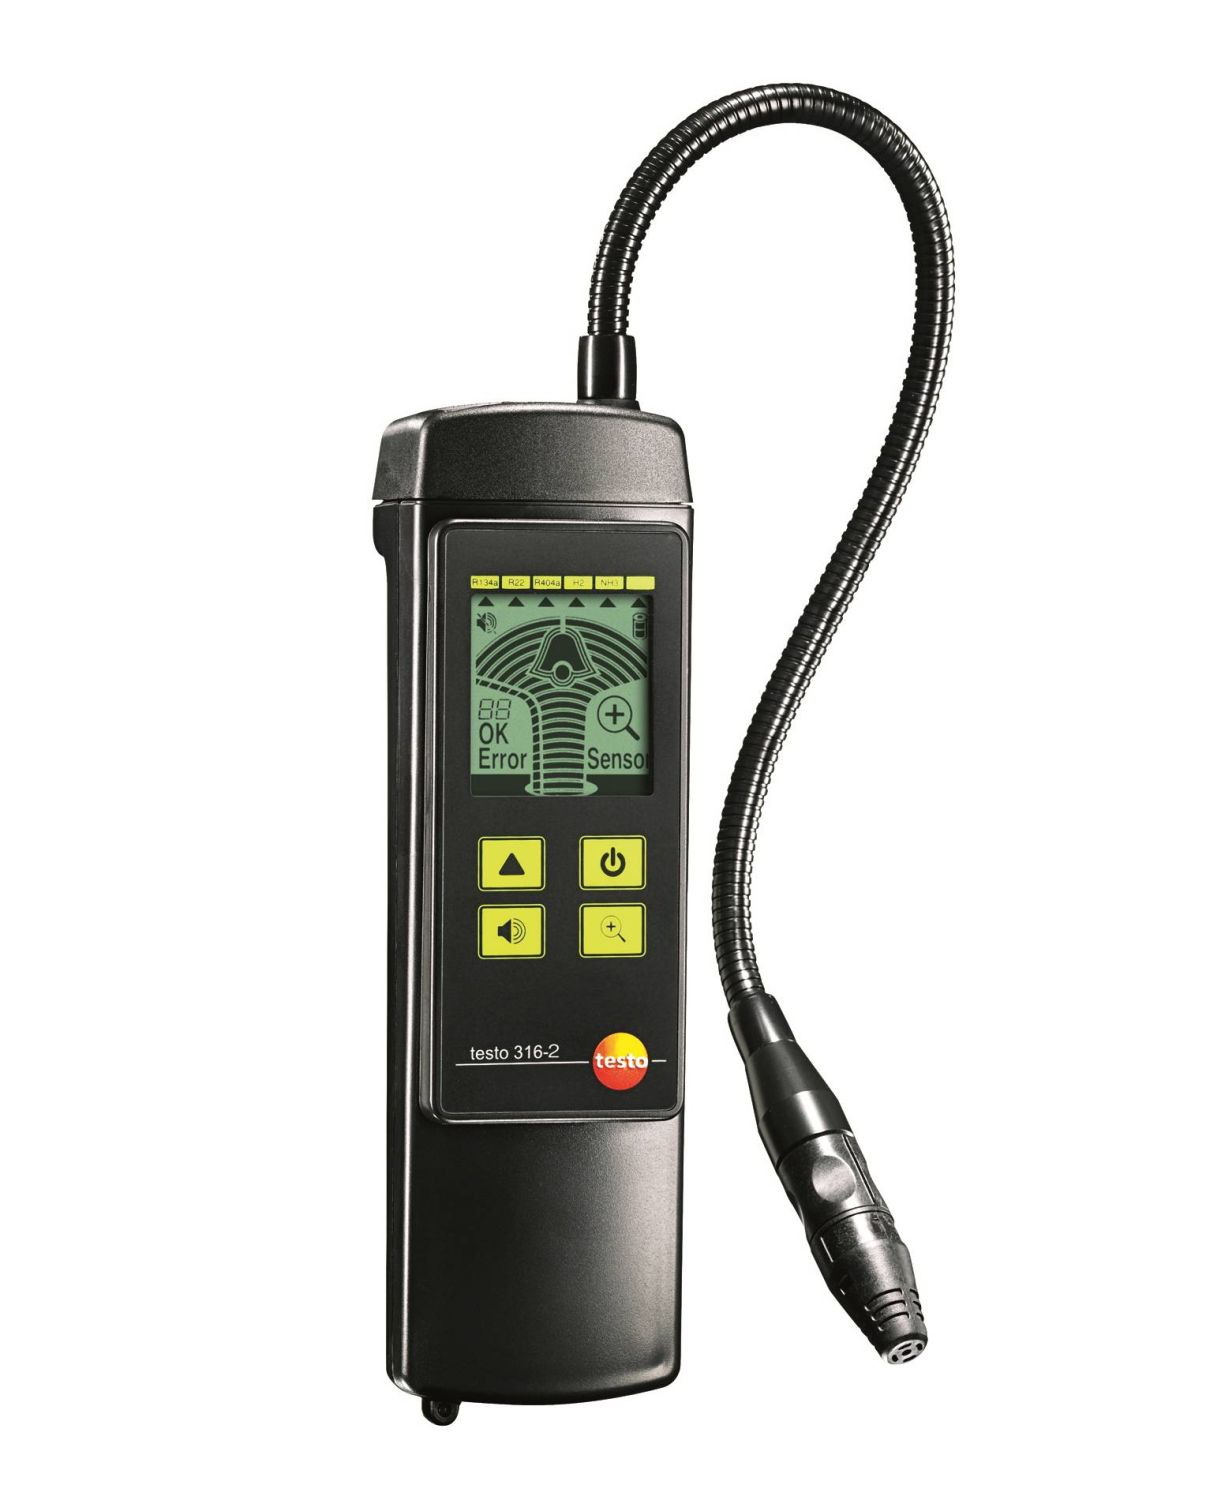 Testo 316-2 - Multiple Gas leak detector